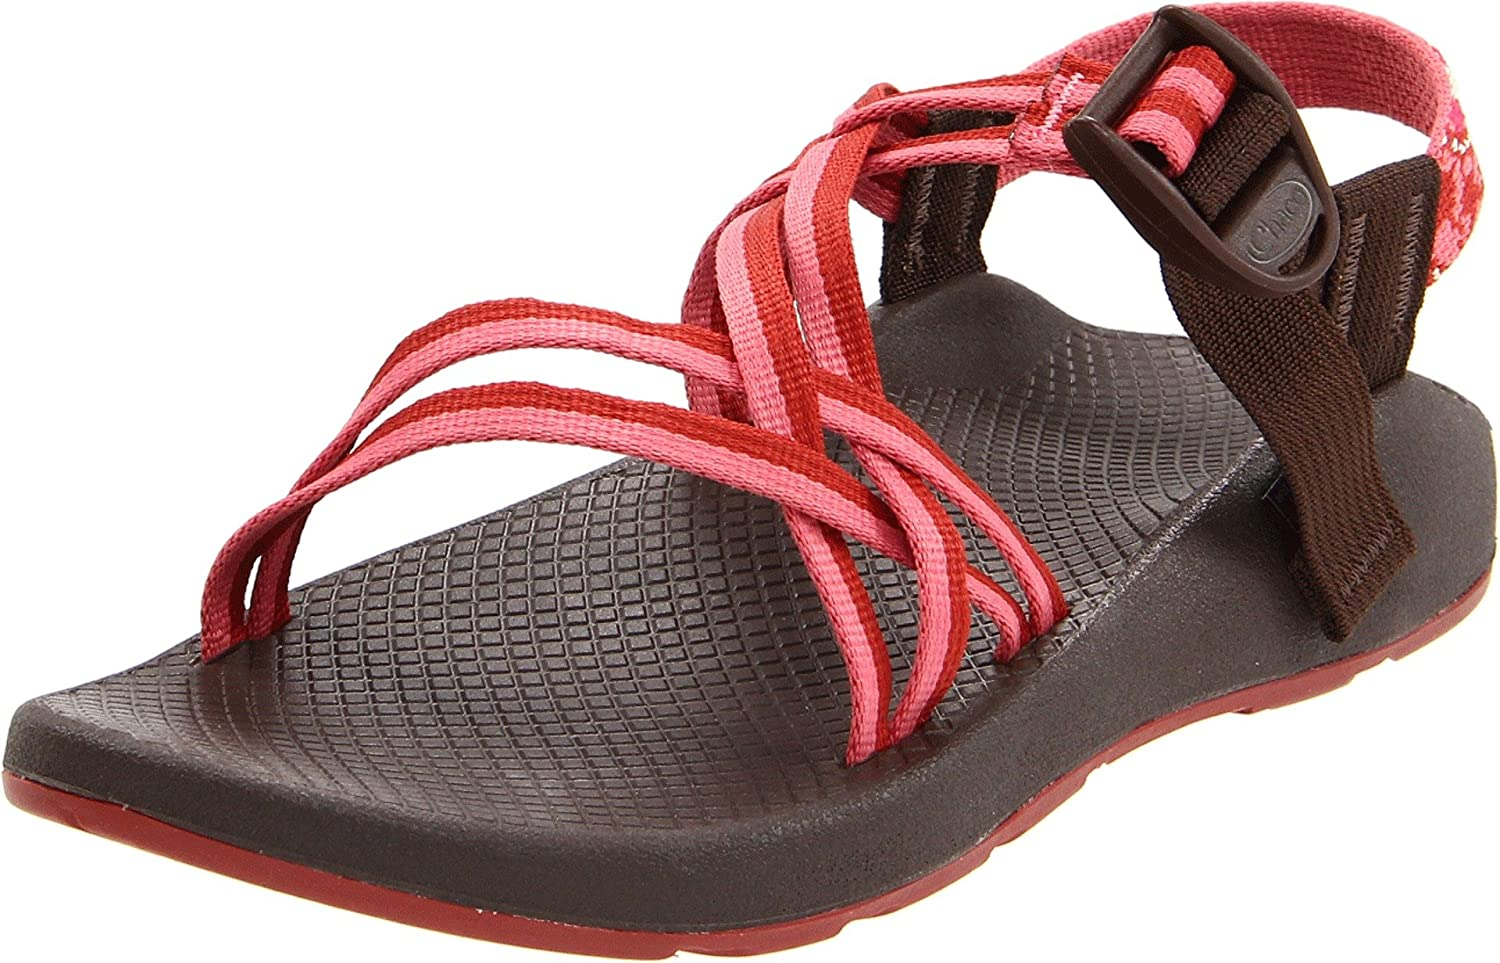 Large discharge sale Chaco Women's ZX Sandal 1 Japan's largest assortment Yampa